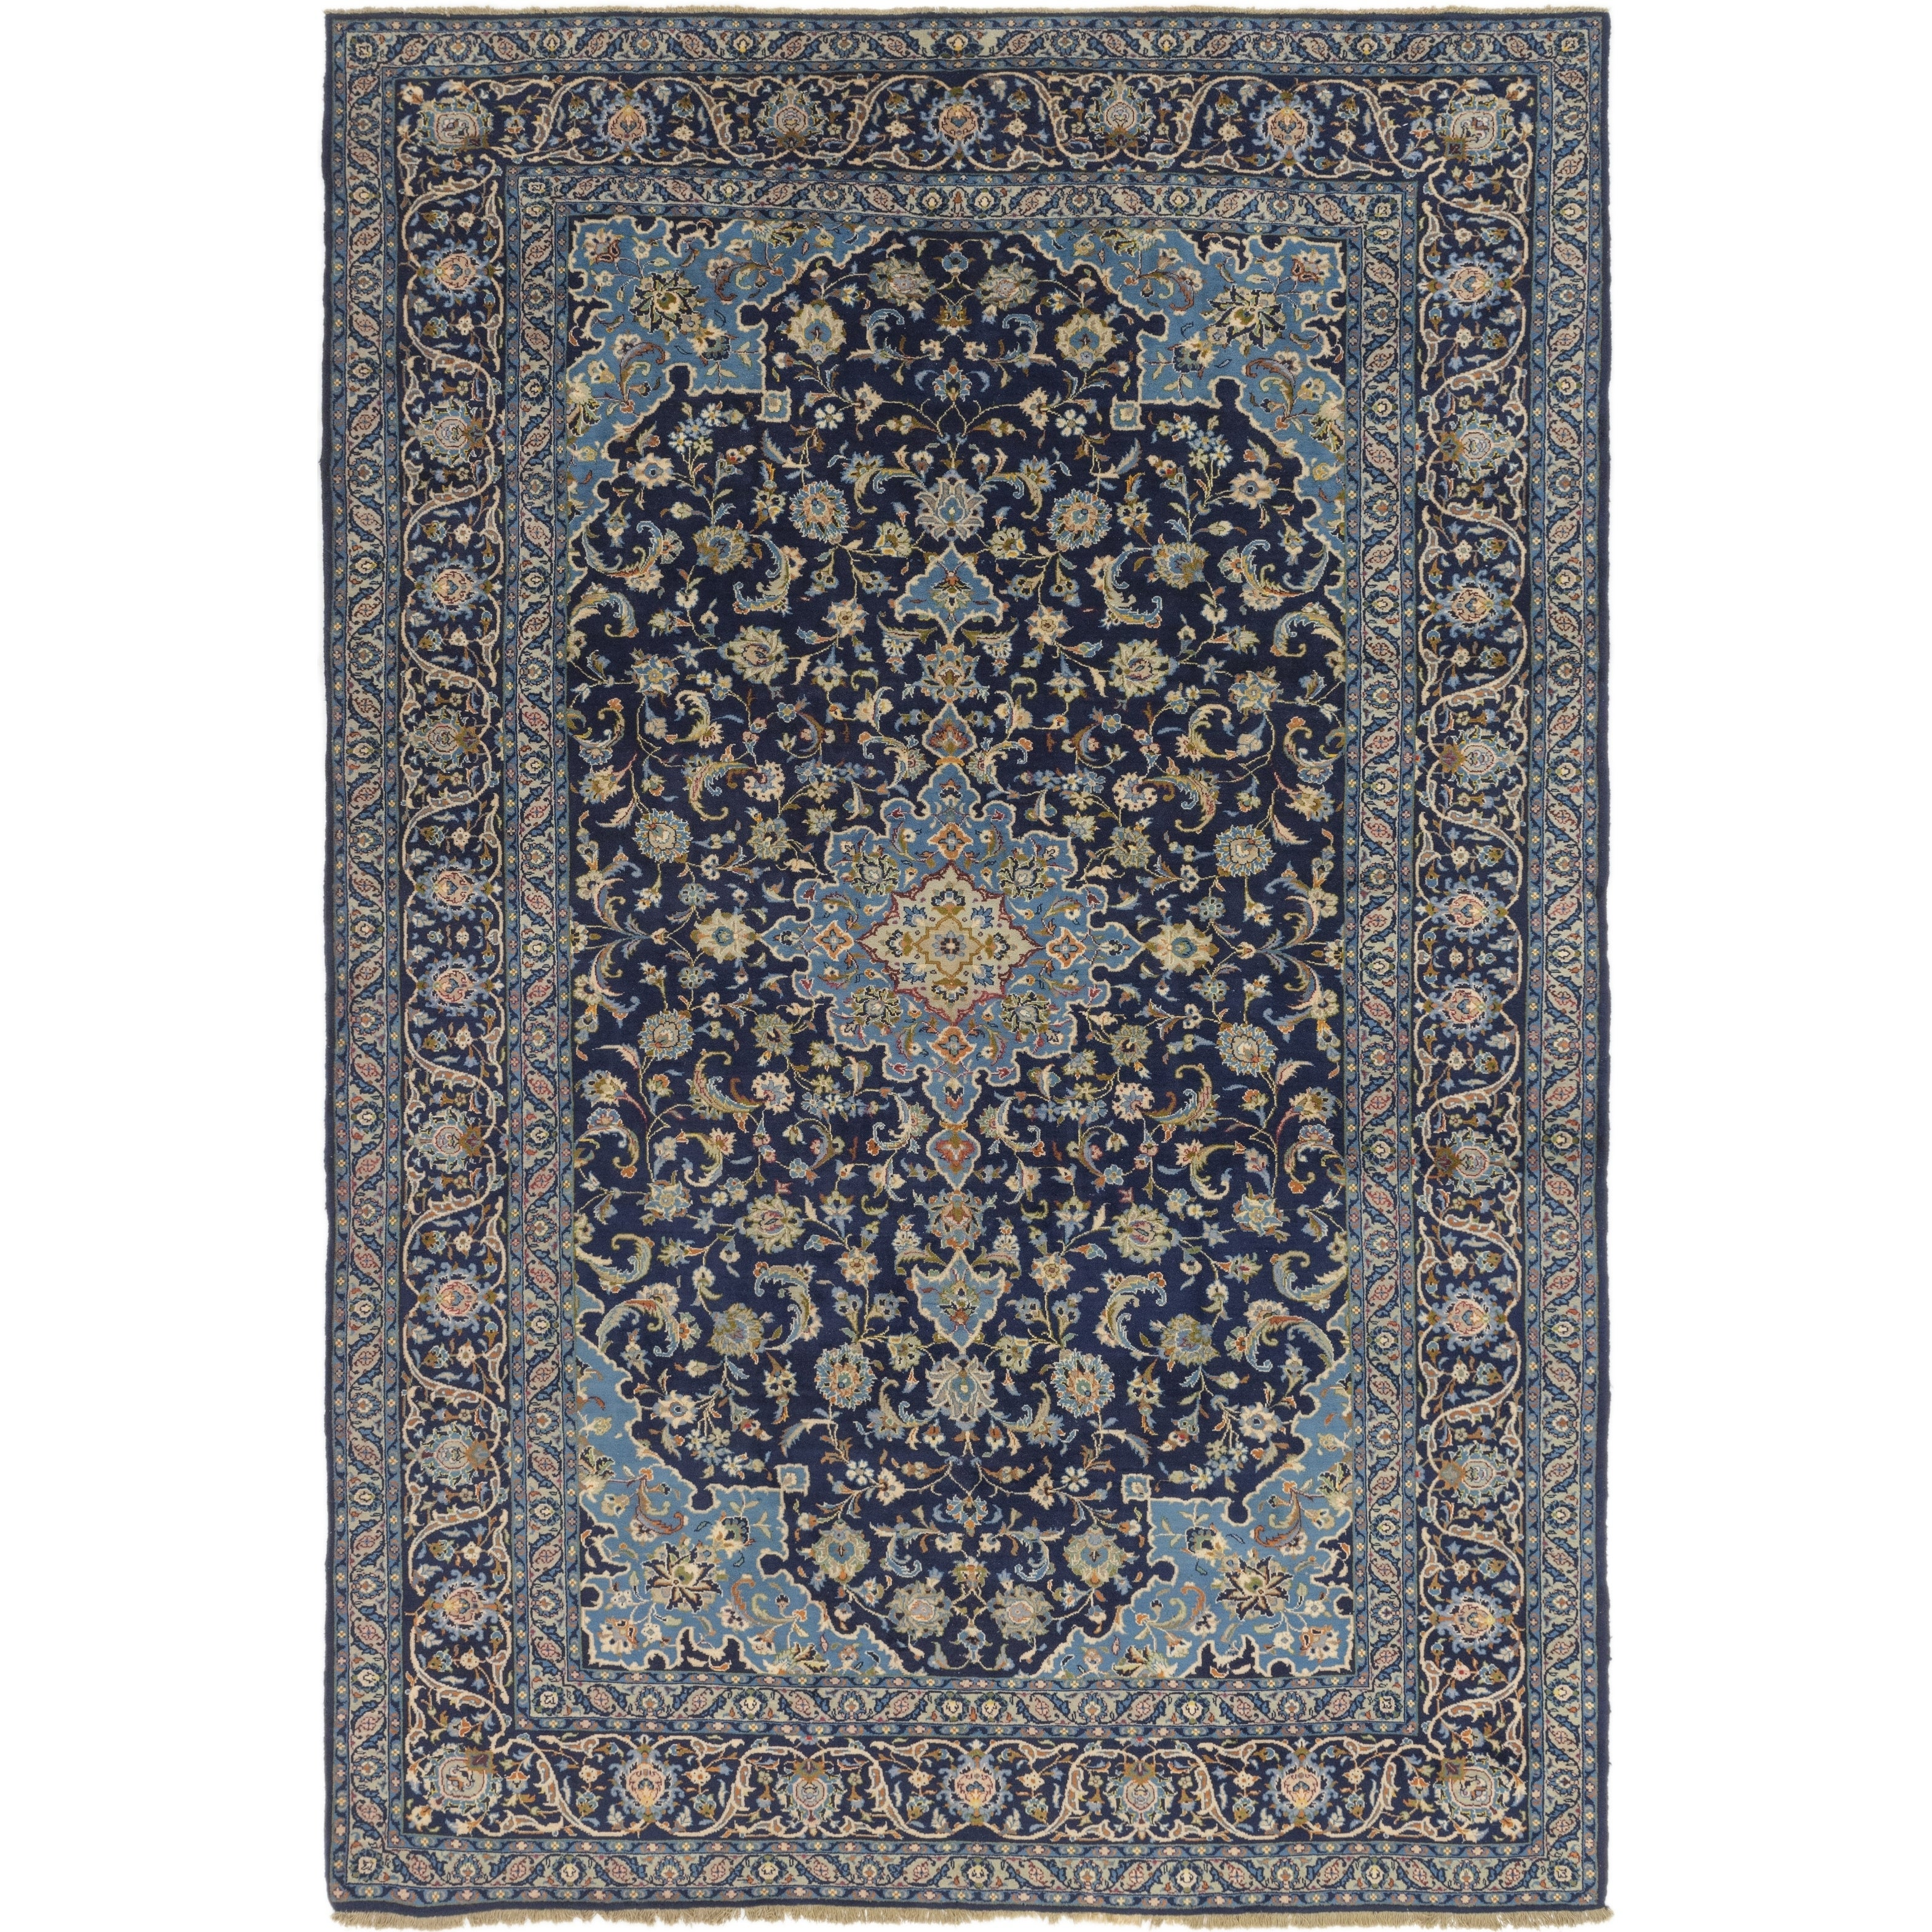 Hand Knotted Kashan Wool Area Rug - 9 5 x 14 (Navy blue - 9 5 x 14)